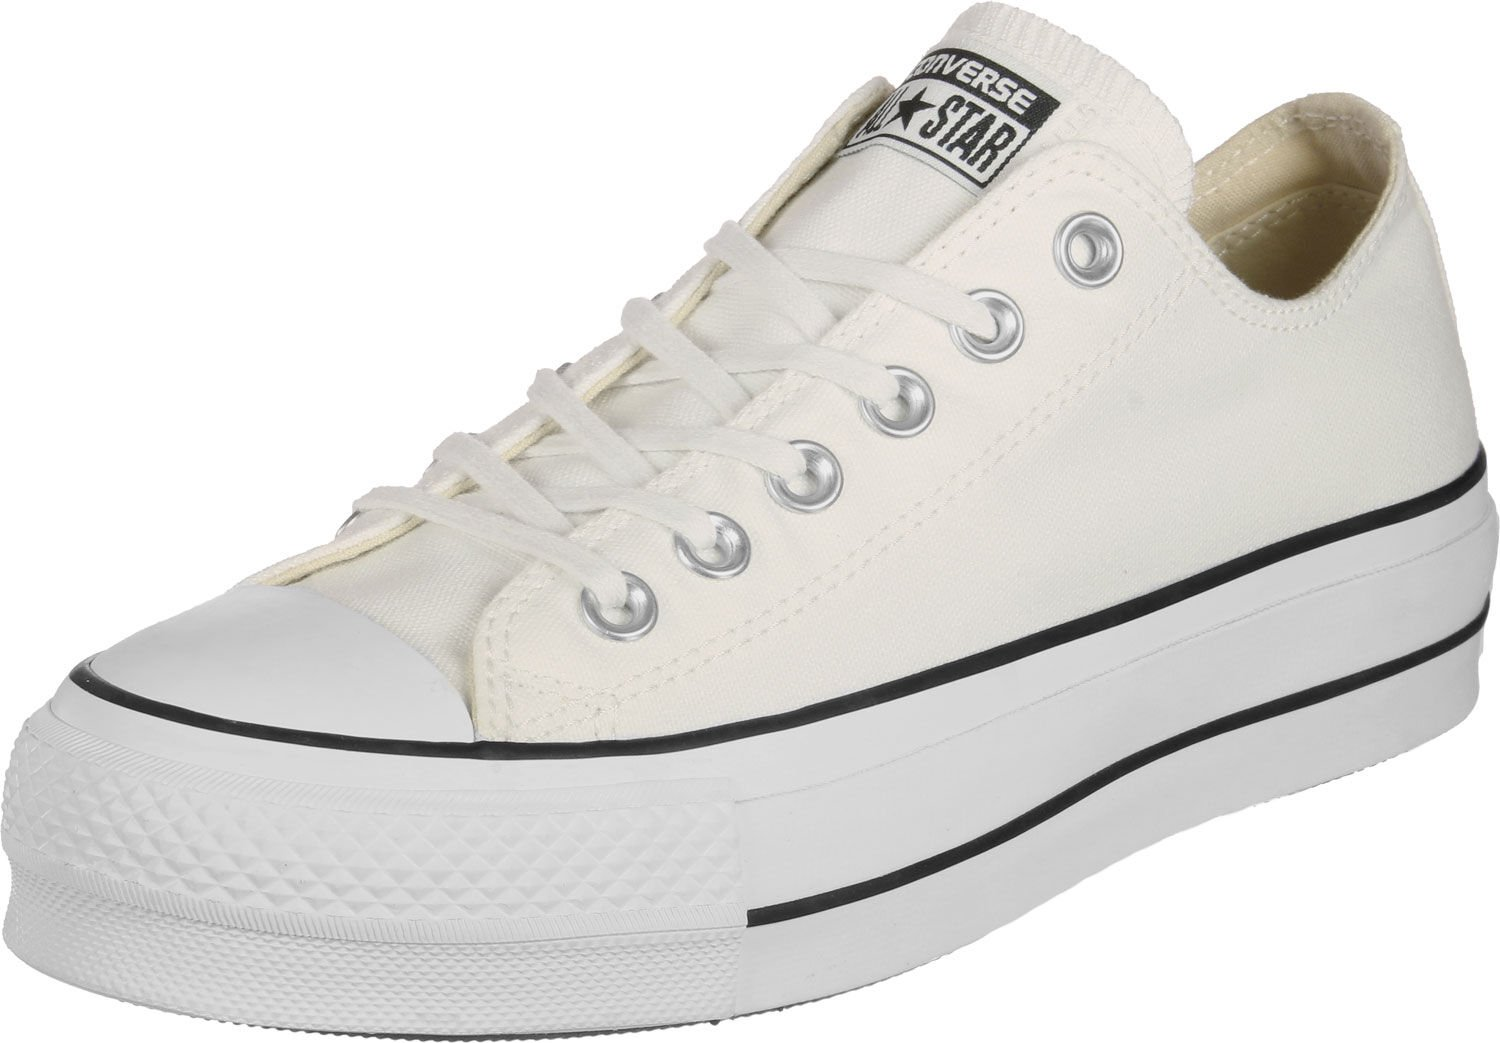 Converse Lift Ox W - Sneakers Low at